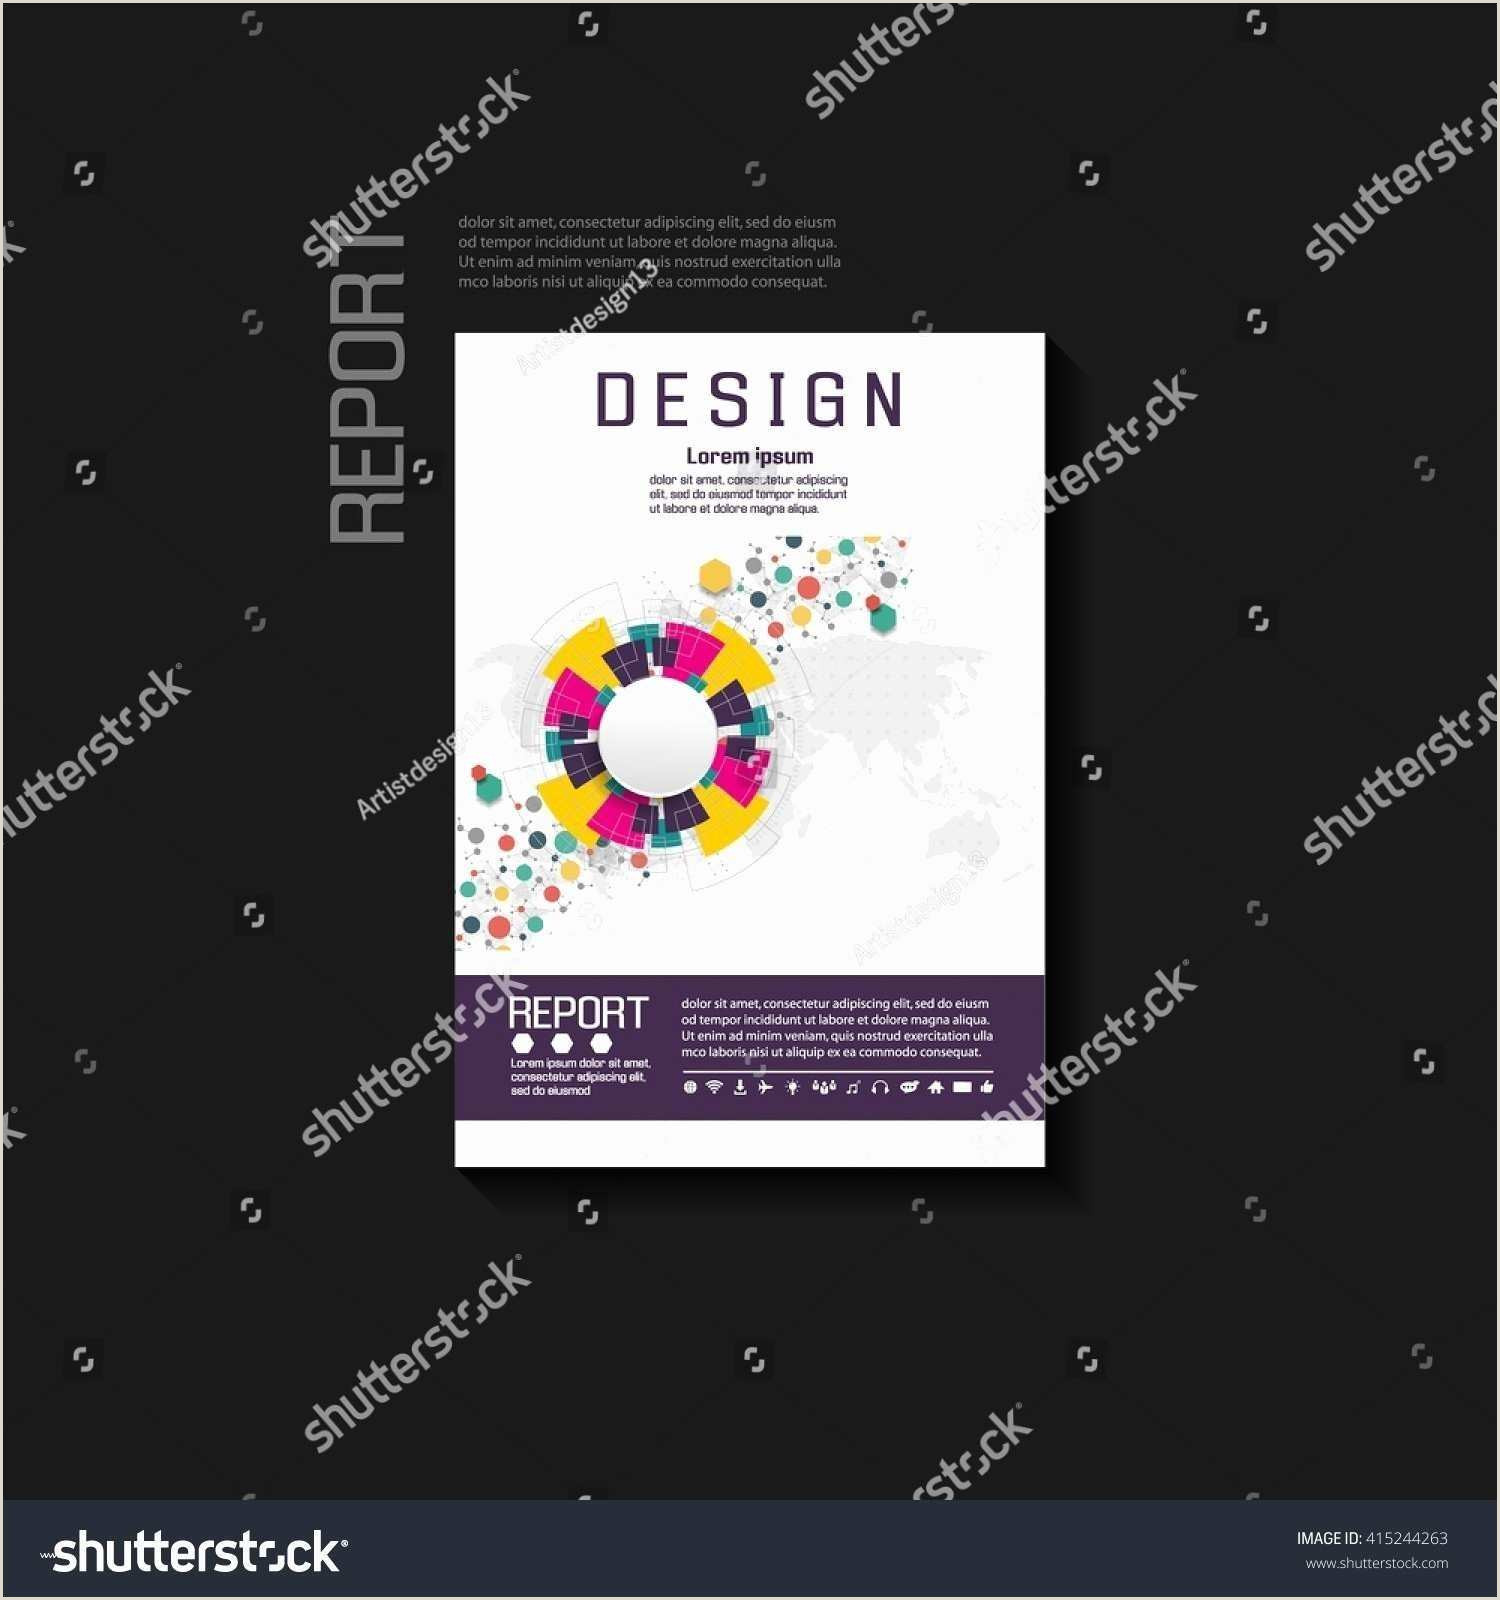 How To Make Bussiness Cards Business Card Template 10 Per Page Cards Design Templates